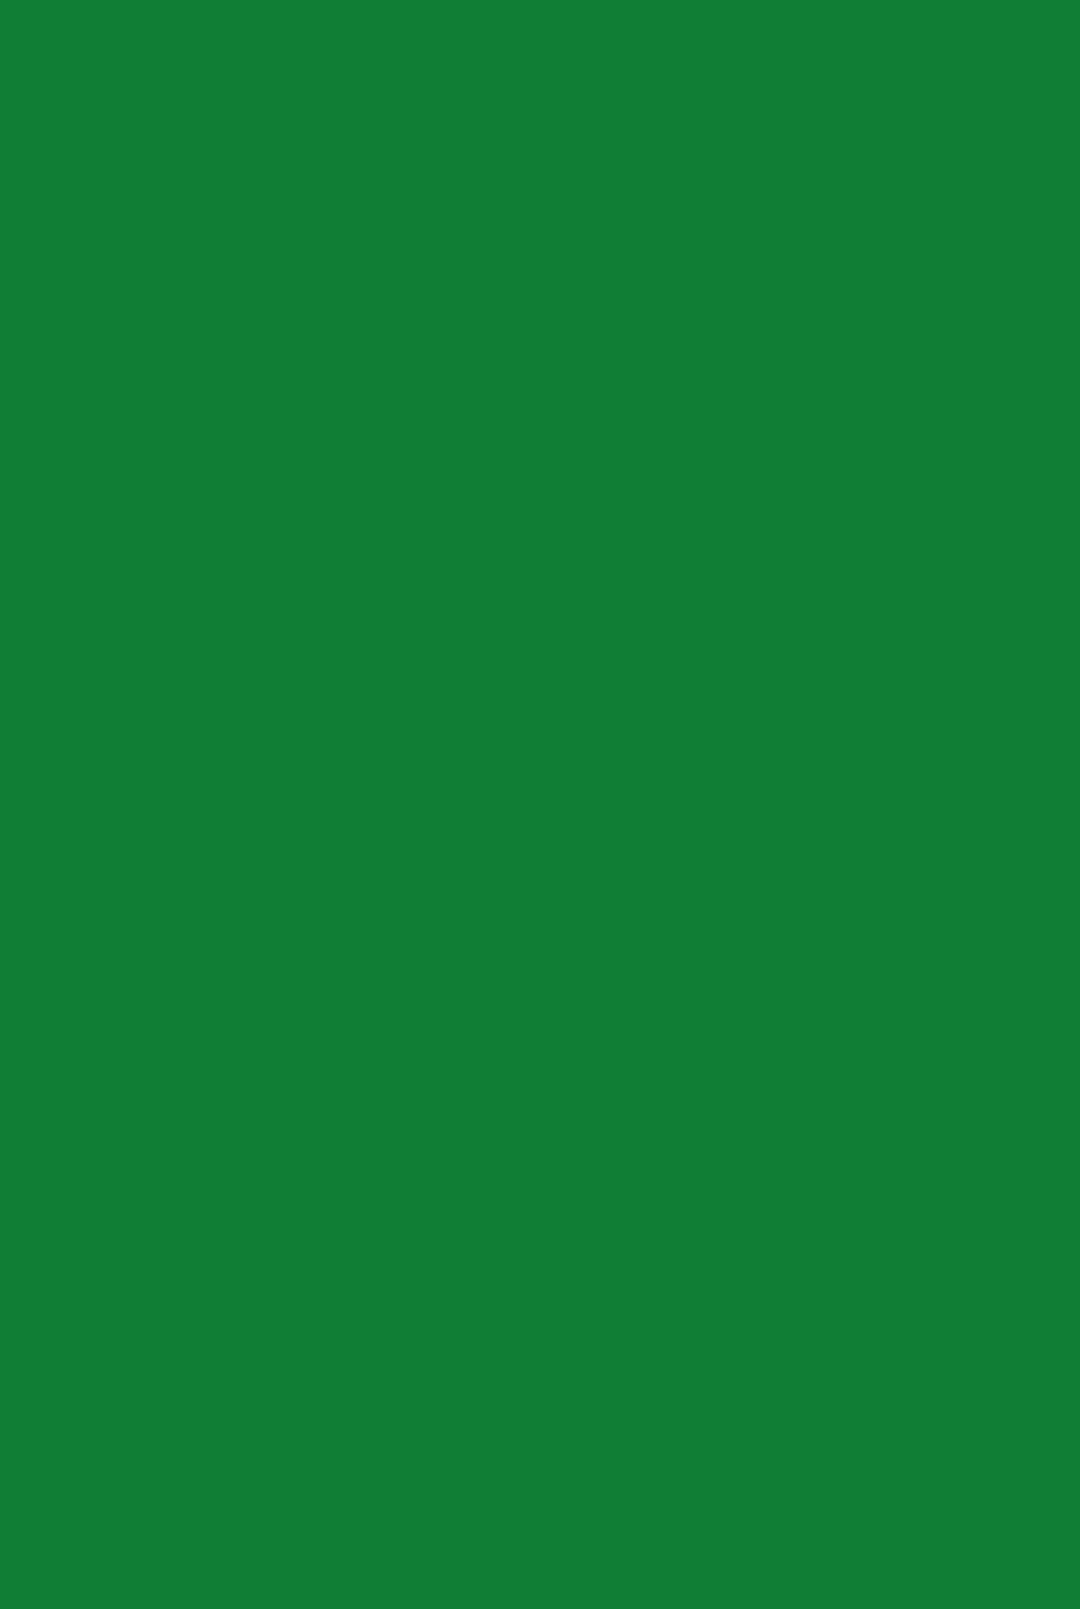 Underwater Anti-fouling Green